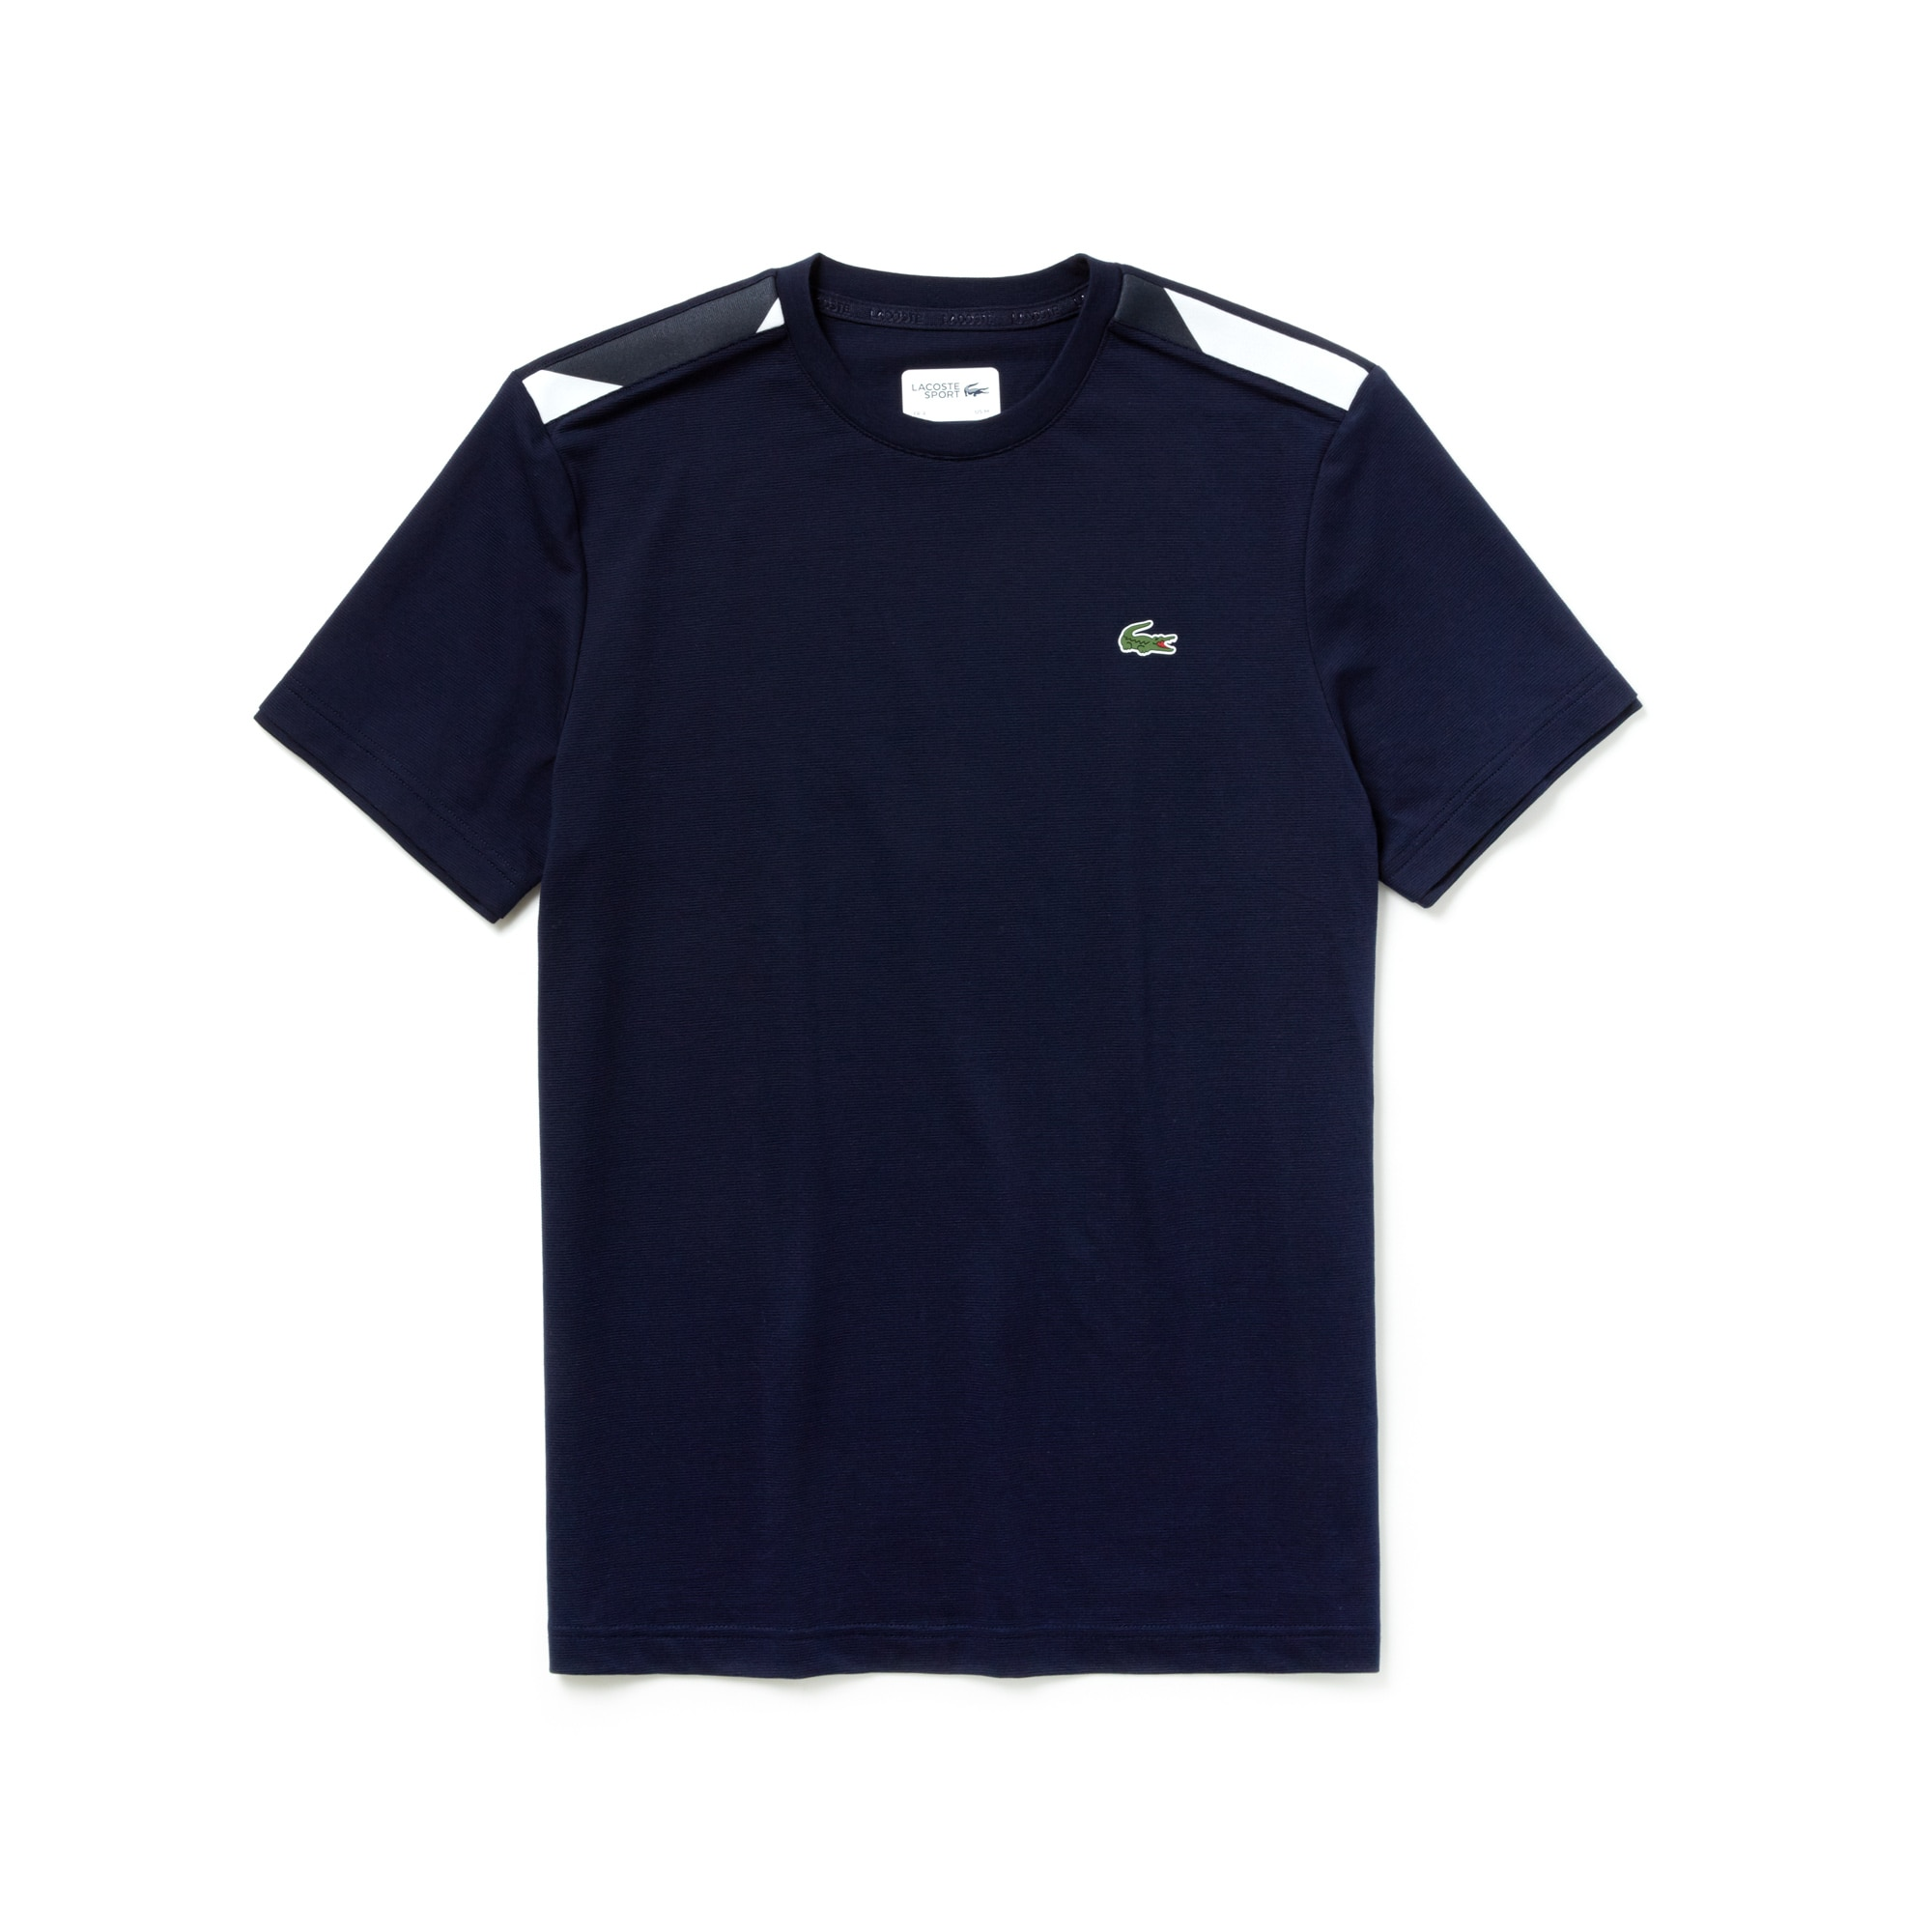 Men's Lacoste SPORT Contrast Accents Cotton Tennis T-shirt